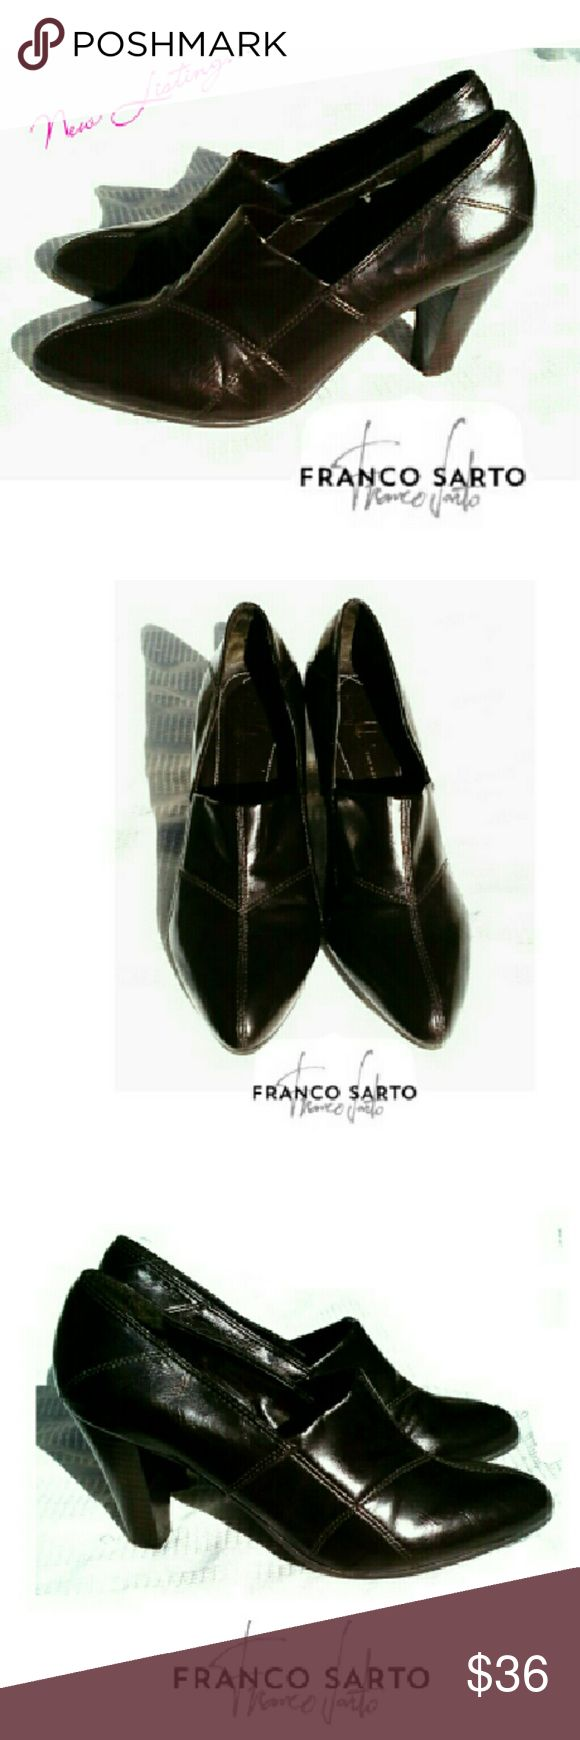 "FRANCO SARTO DRK BROWN HEEL SHOES FRANCO SARTO DARK BROWN HEEL SHOES Pre-loved / See Pics *   Dark Brown Manmade Material *   3 1/2"" Heel *   One Inside has Peeling Lining (Pic #4) *   Very Comfortable Shoe Pls See All Pics. Price Reflects Cond. Franco Sarto Shoes Heels"